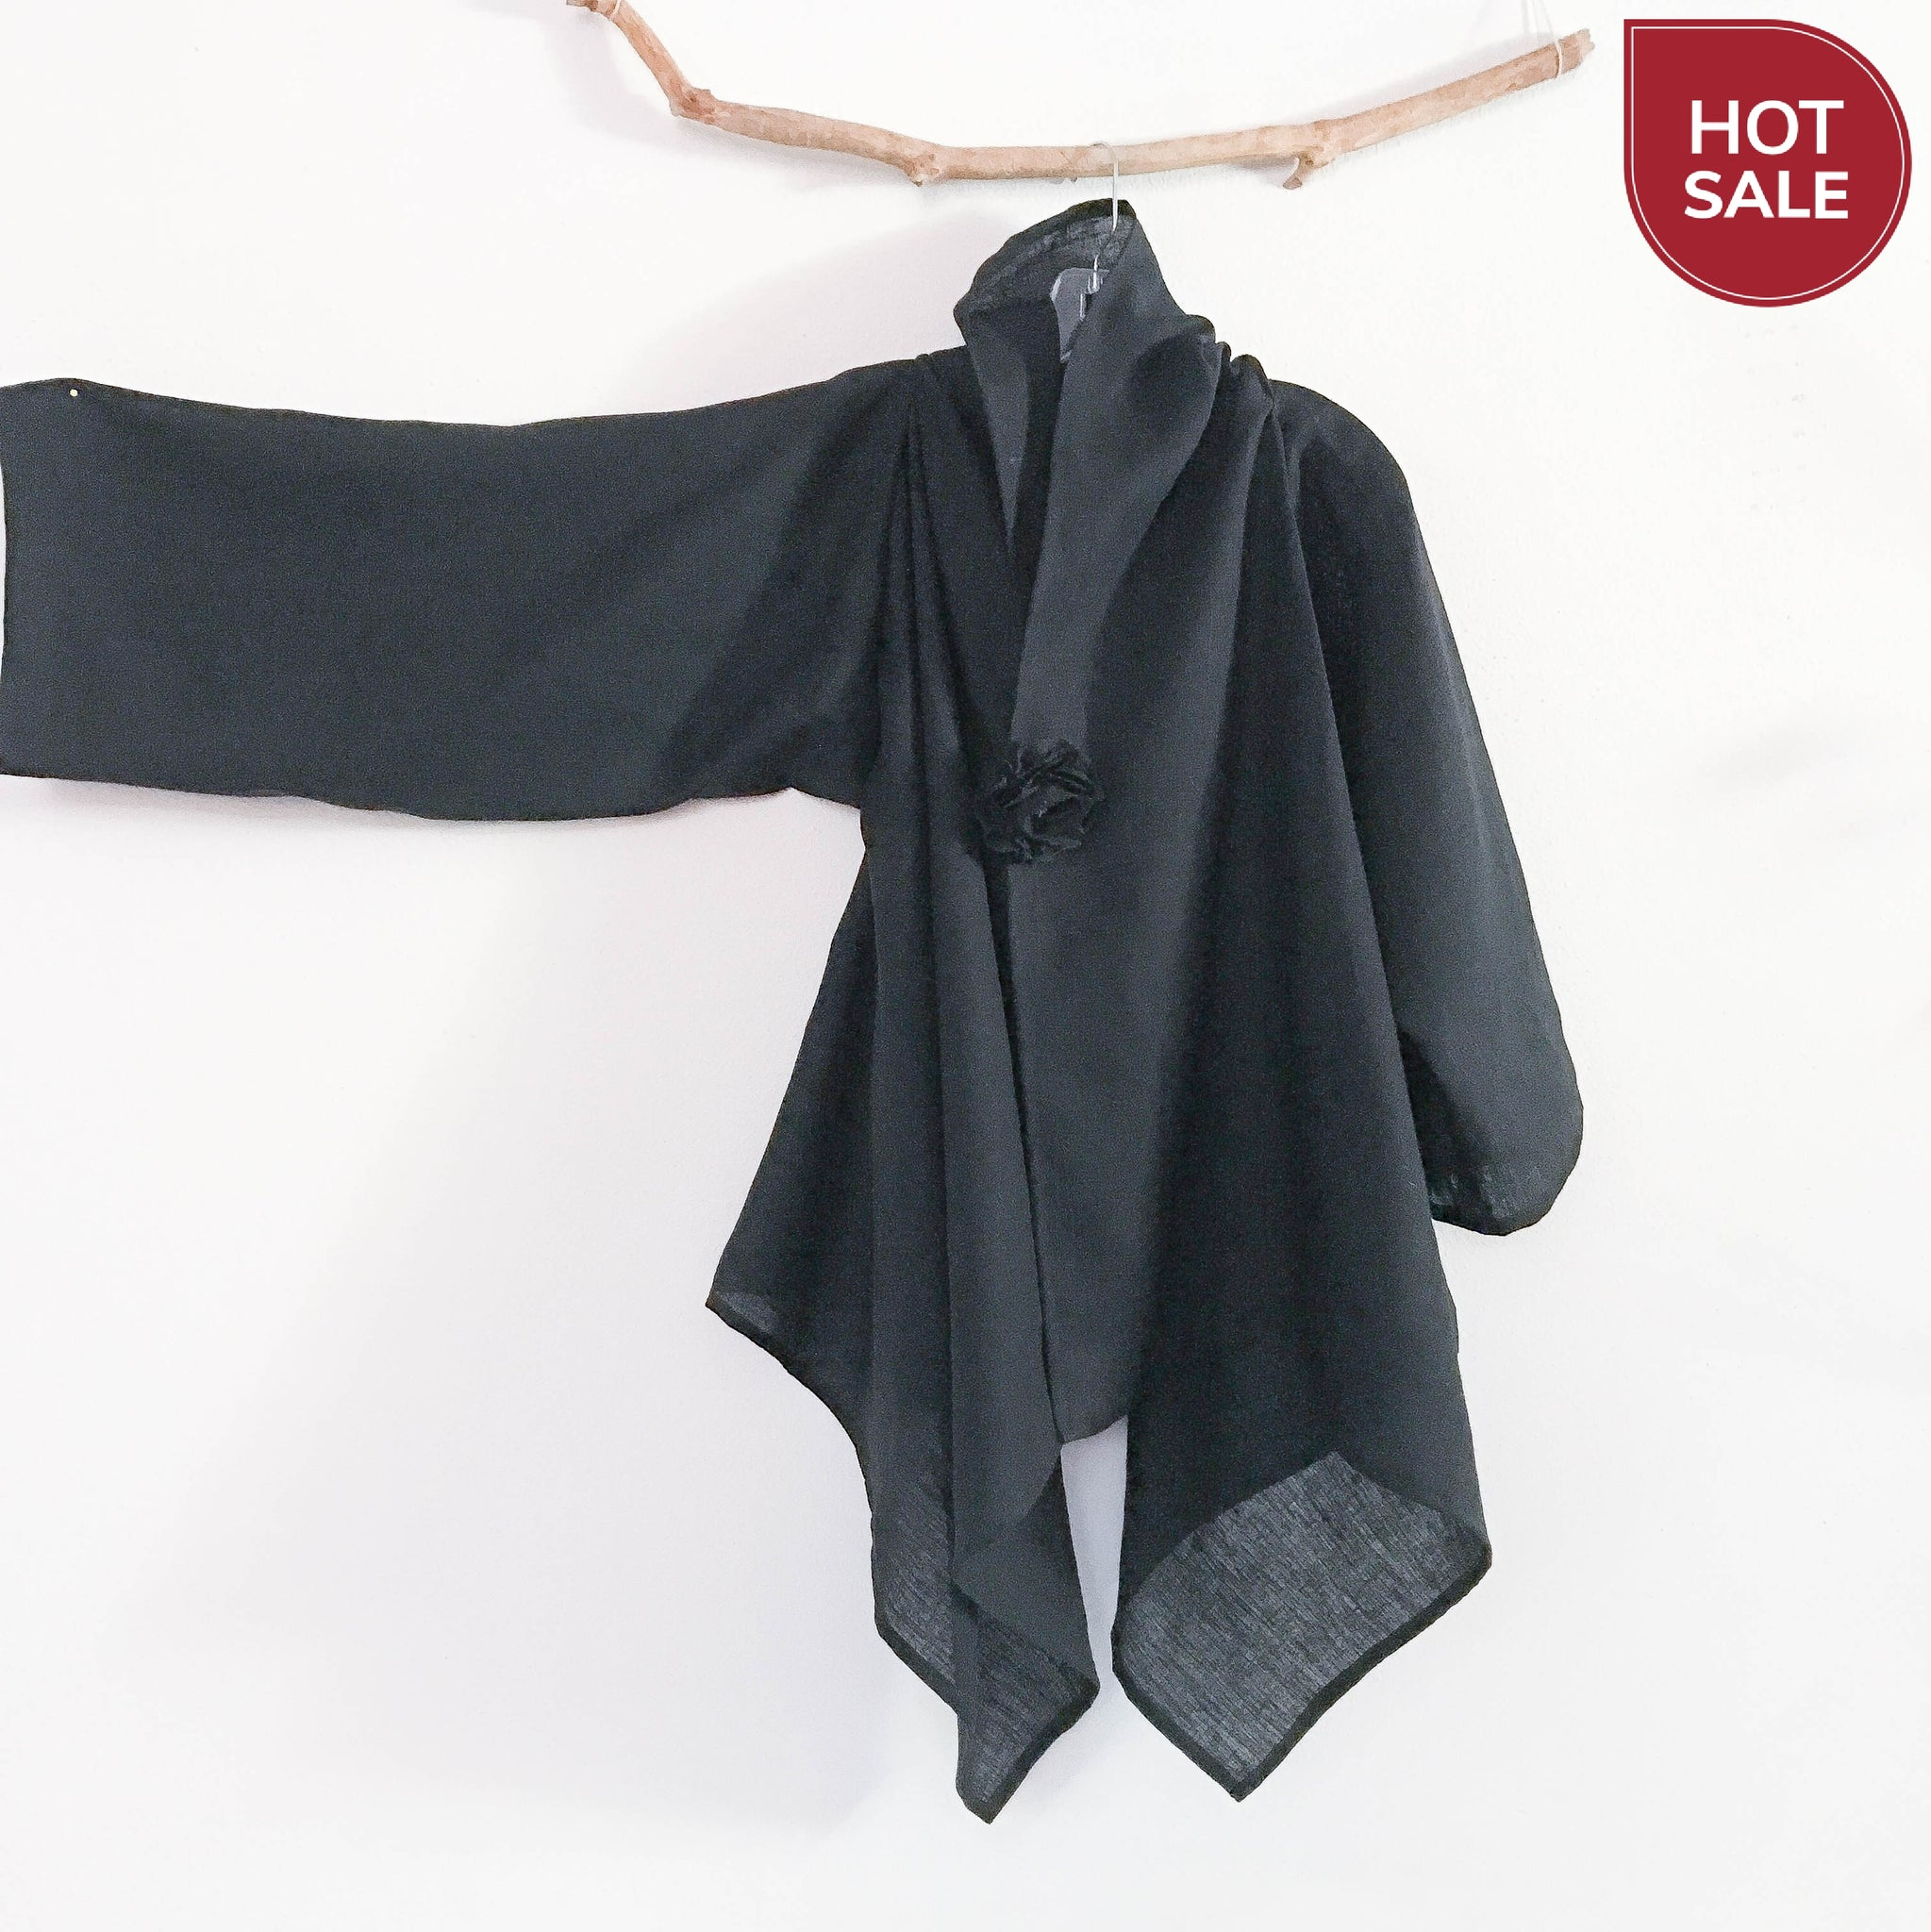 Sold / ready wear black linen wrap jacket with extra width plus size fit too